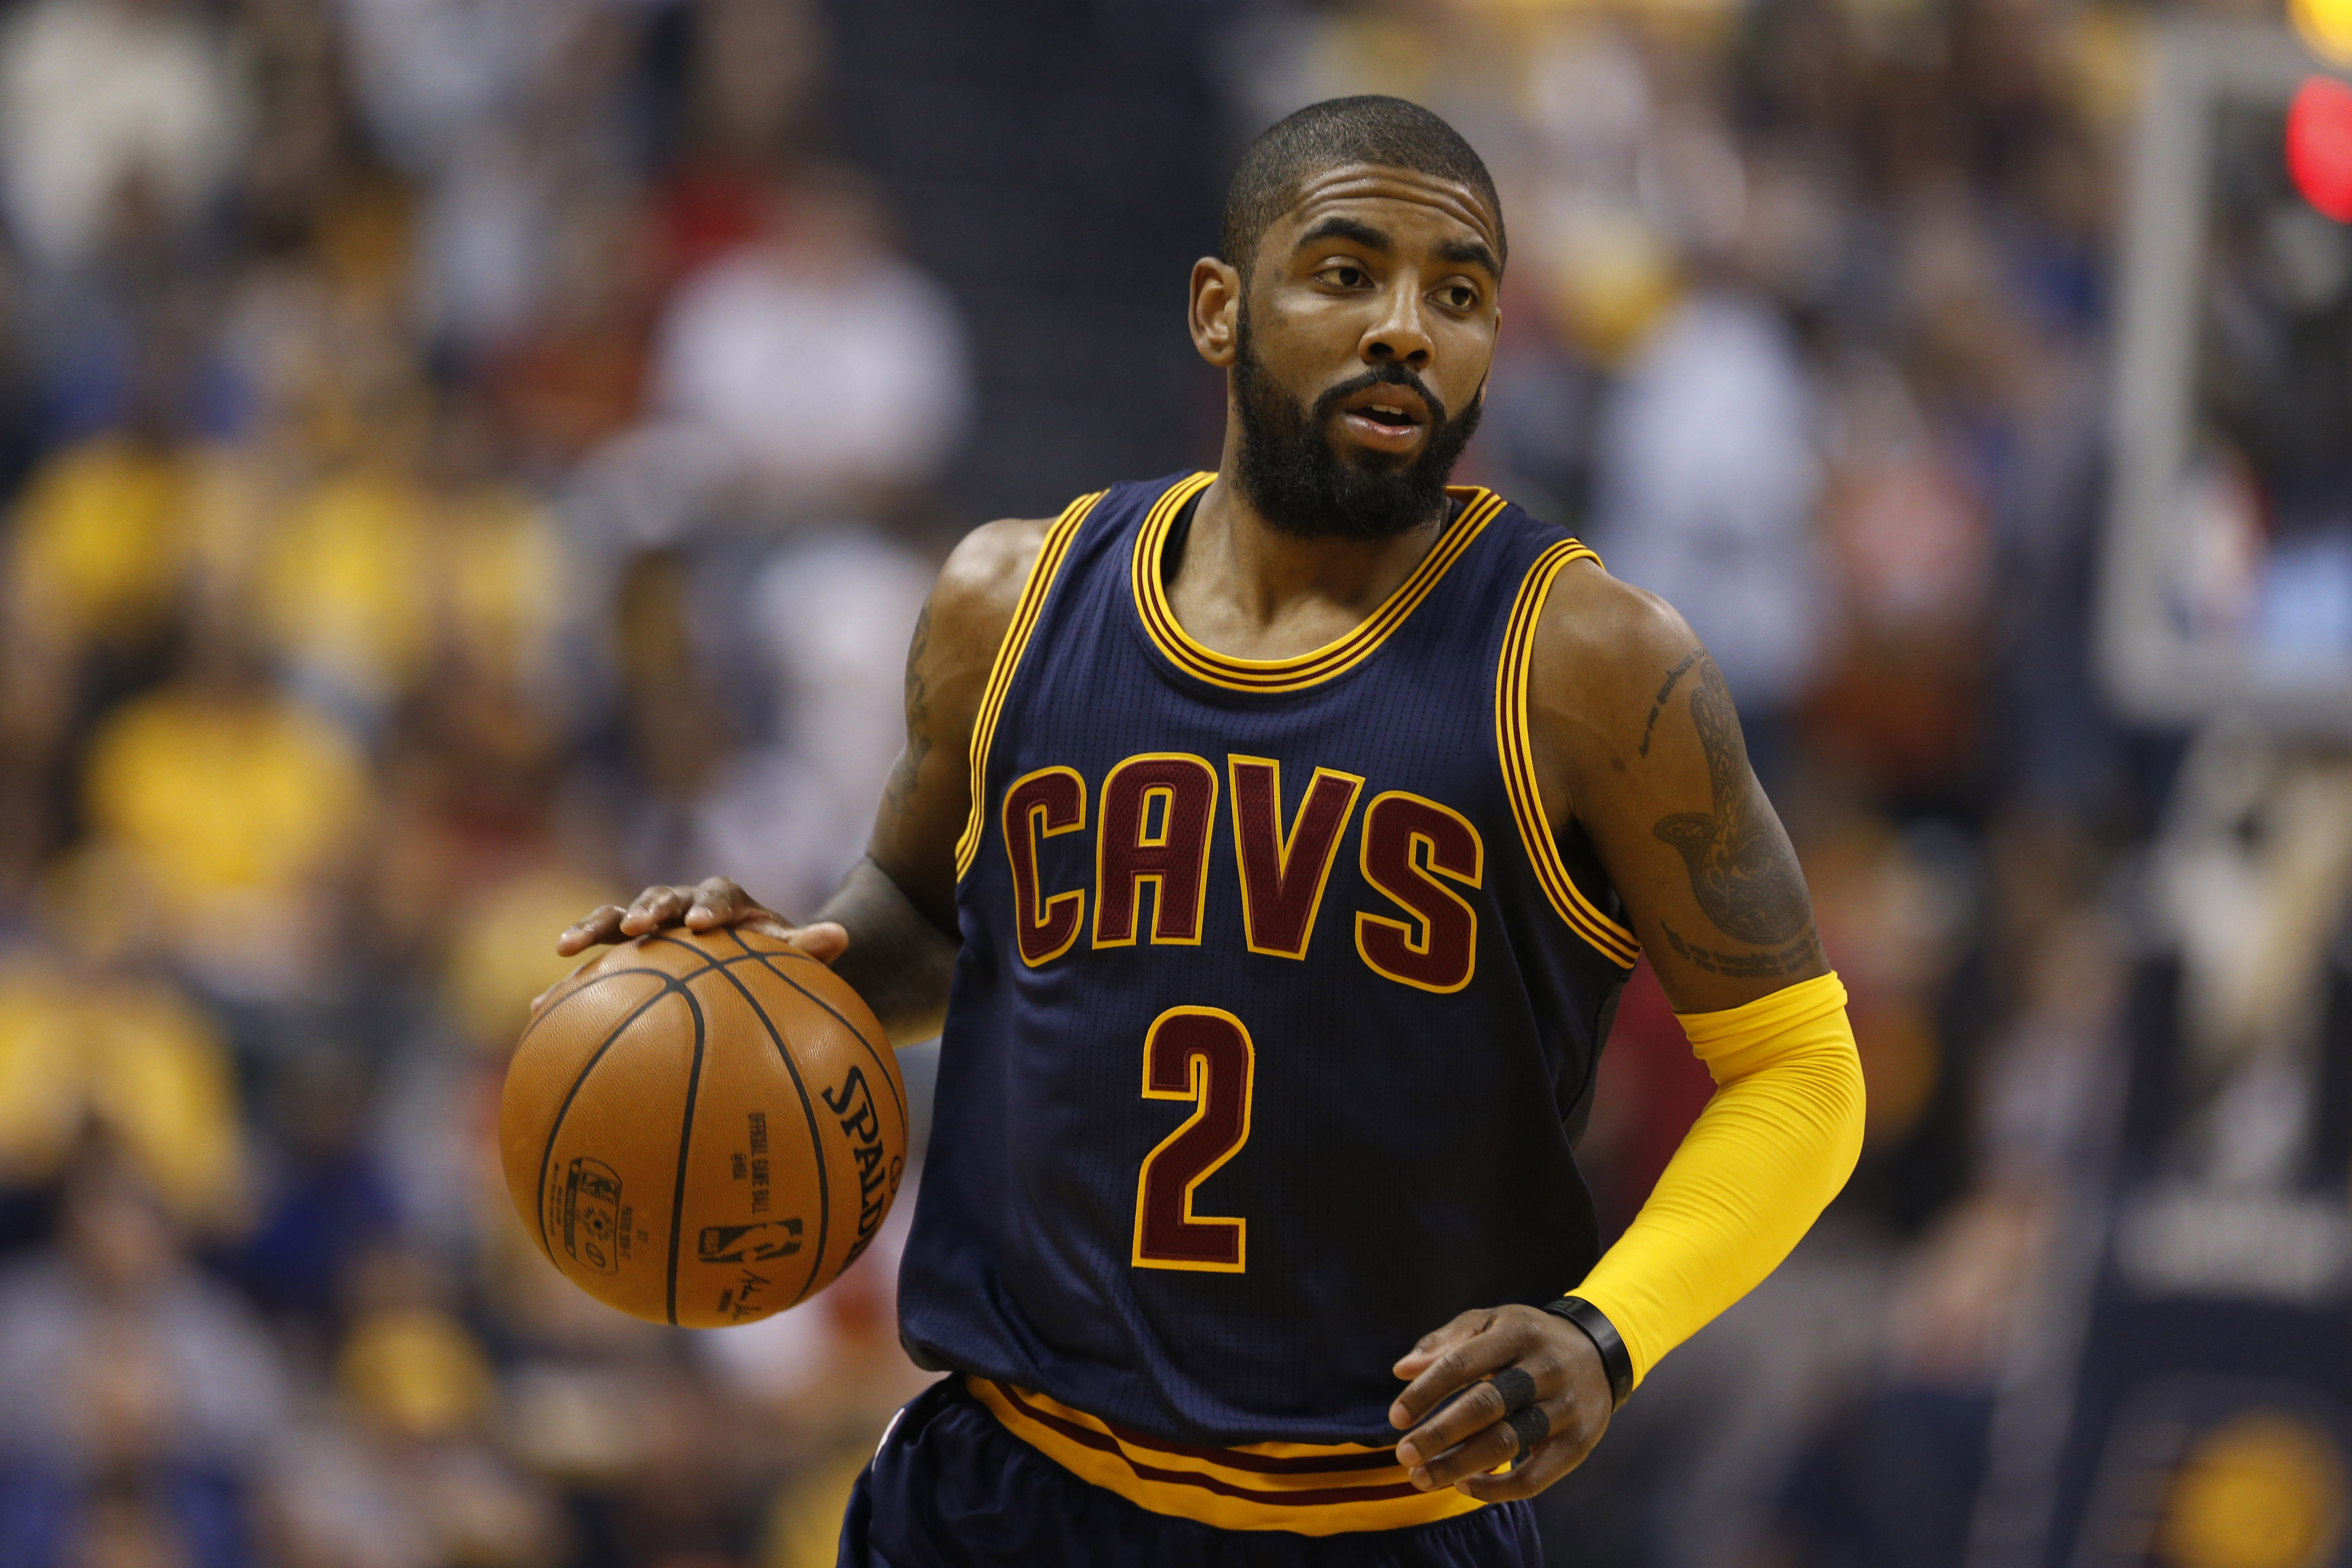 10027230-nba-playoffs-cleveland-cavaliers-at-indiana-pacers